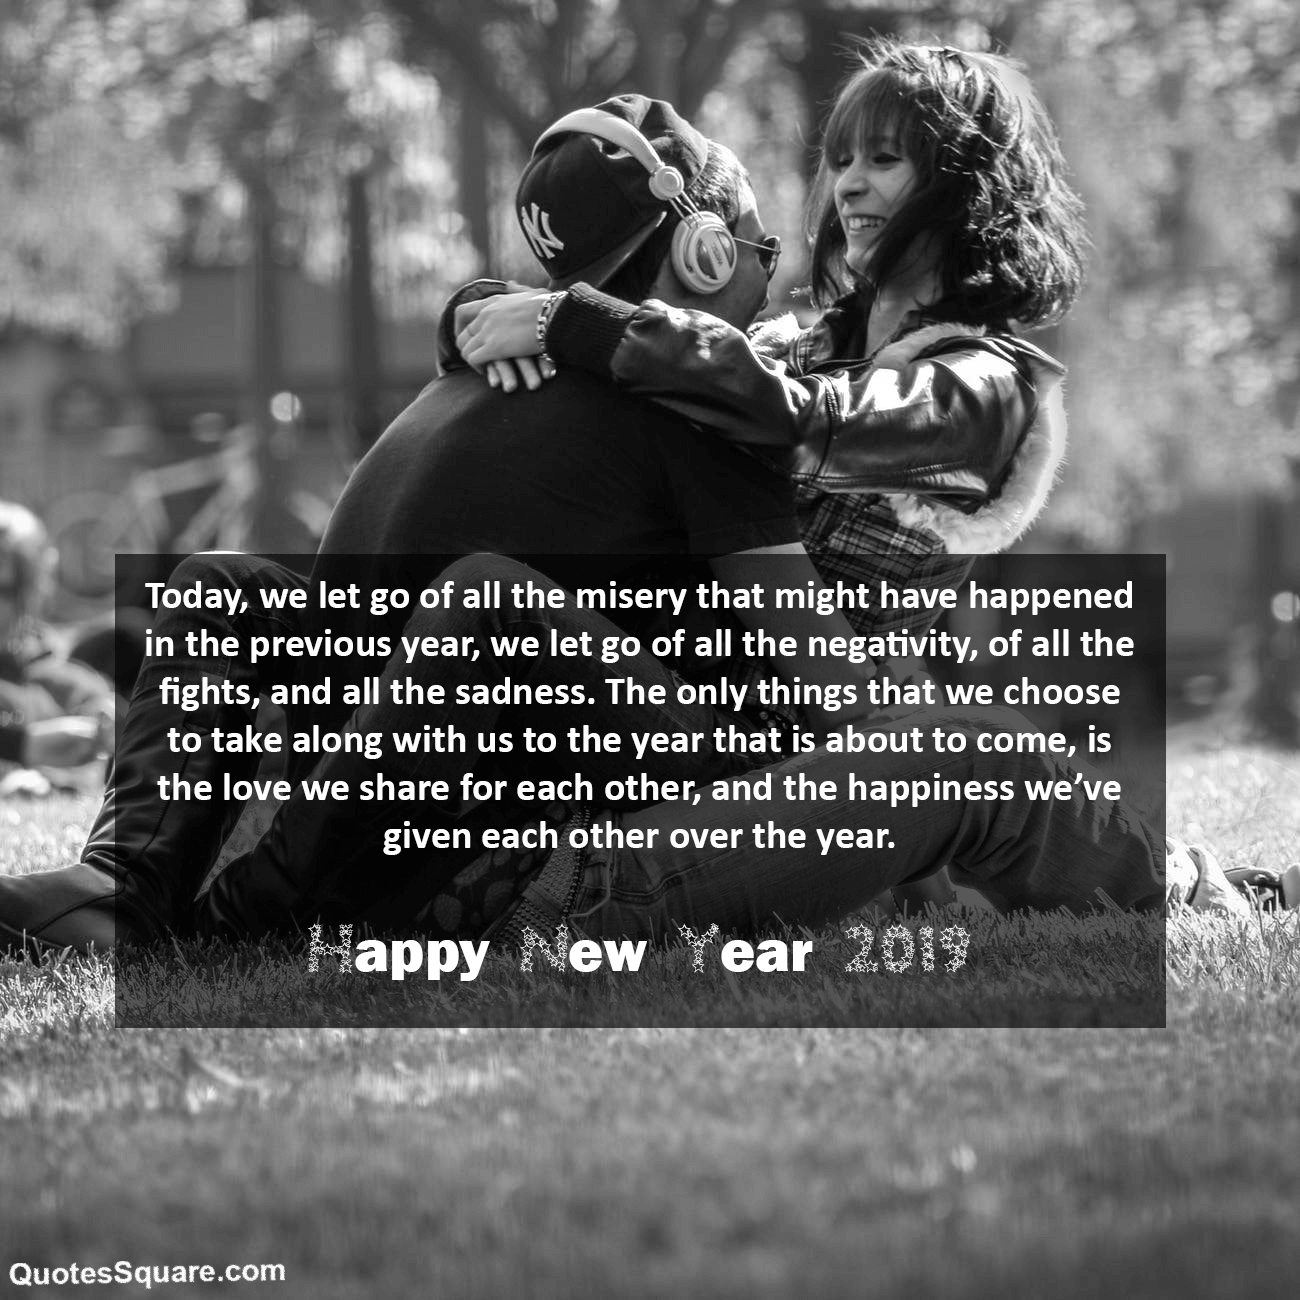 New year 2019 romantic messages for her him